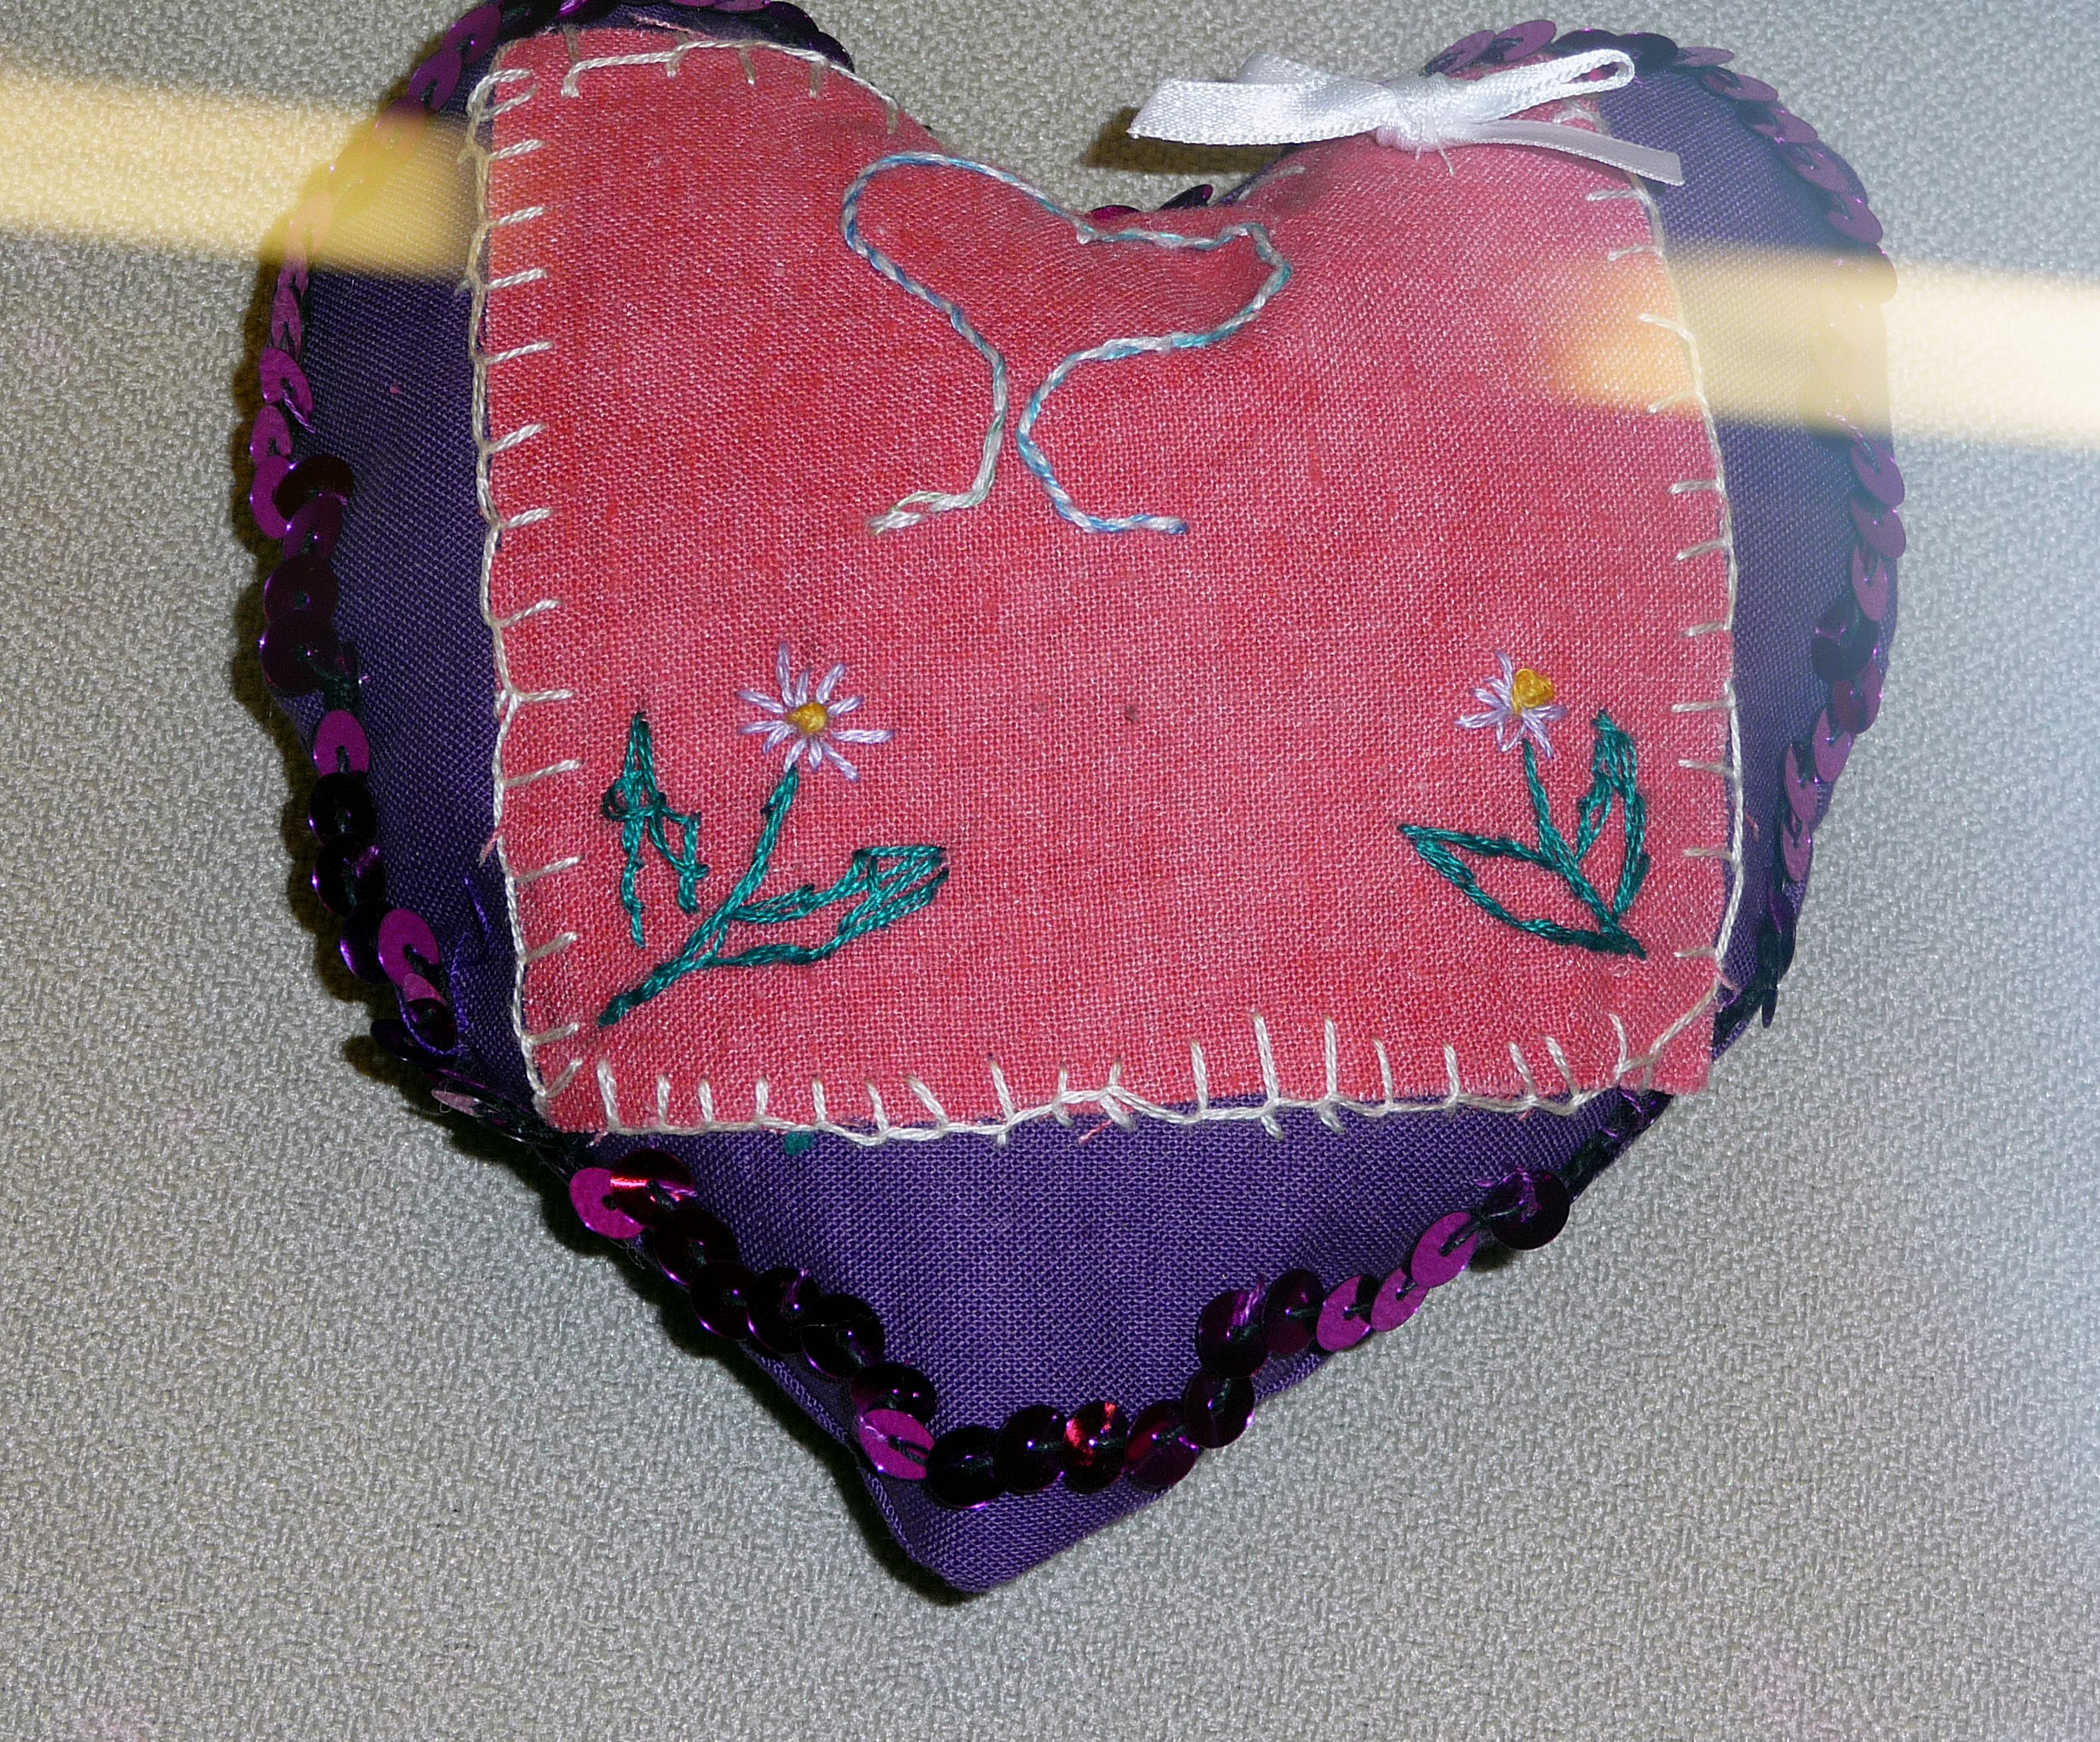 pincushion to commemorate World War 1 made by Grace, a Merseyside Young Embroiderer